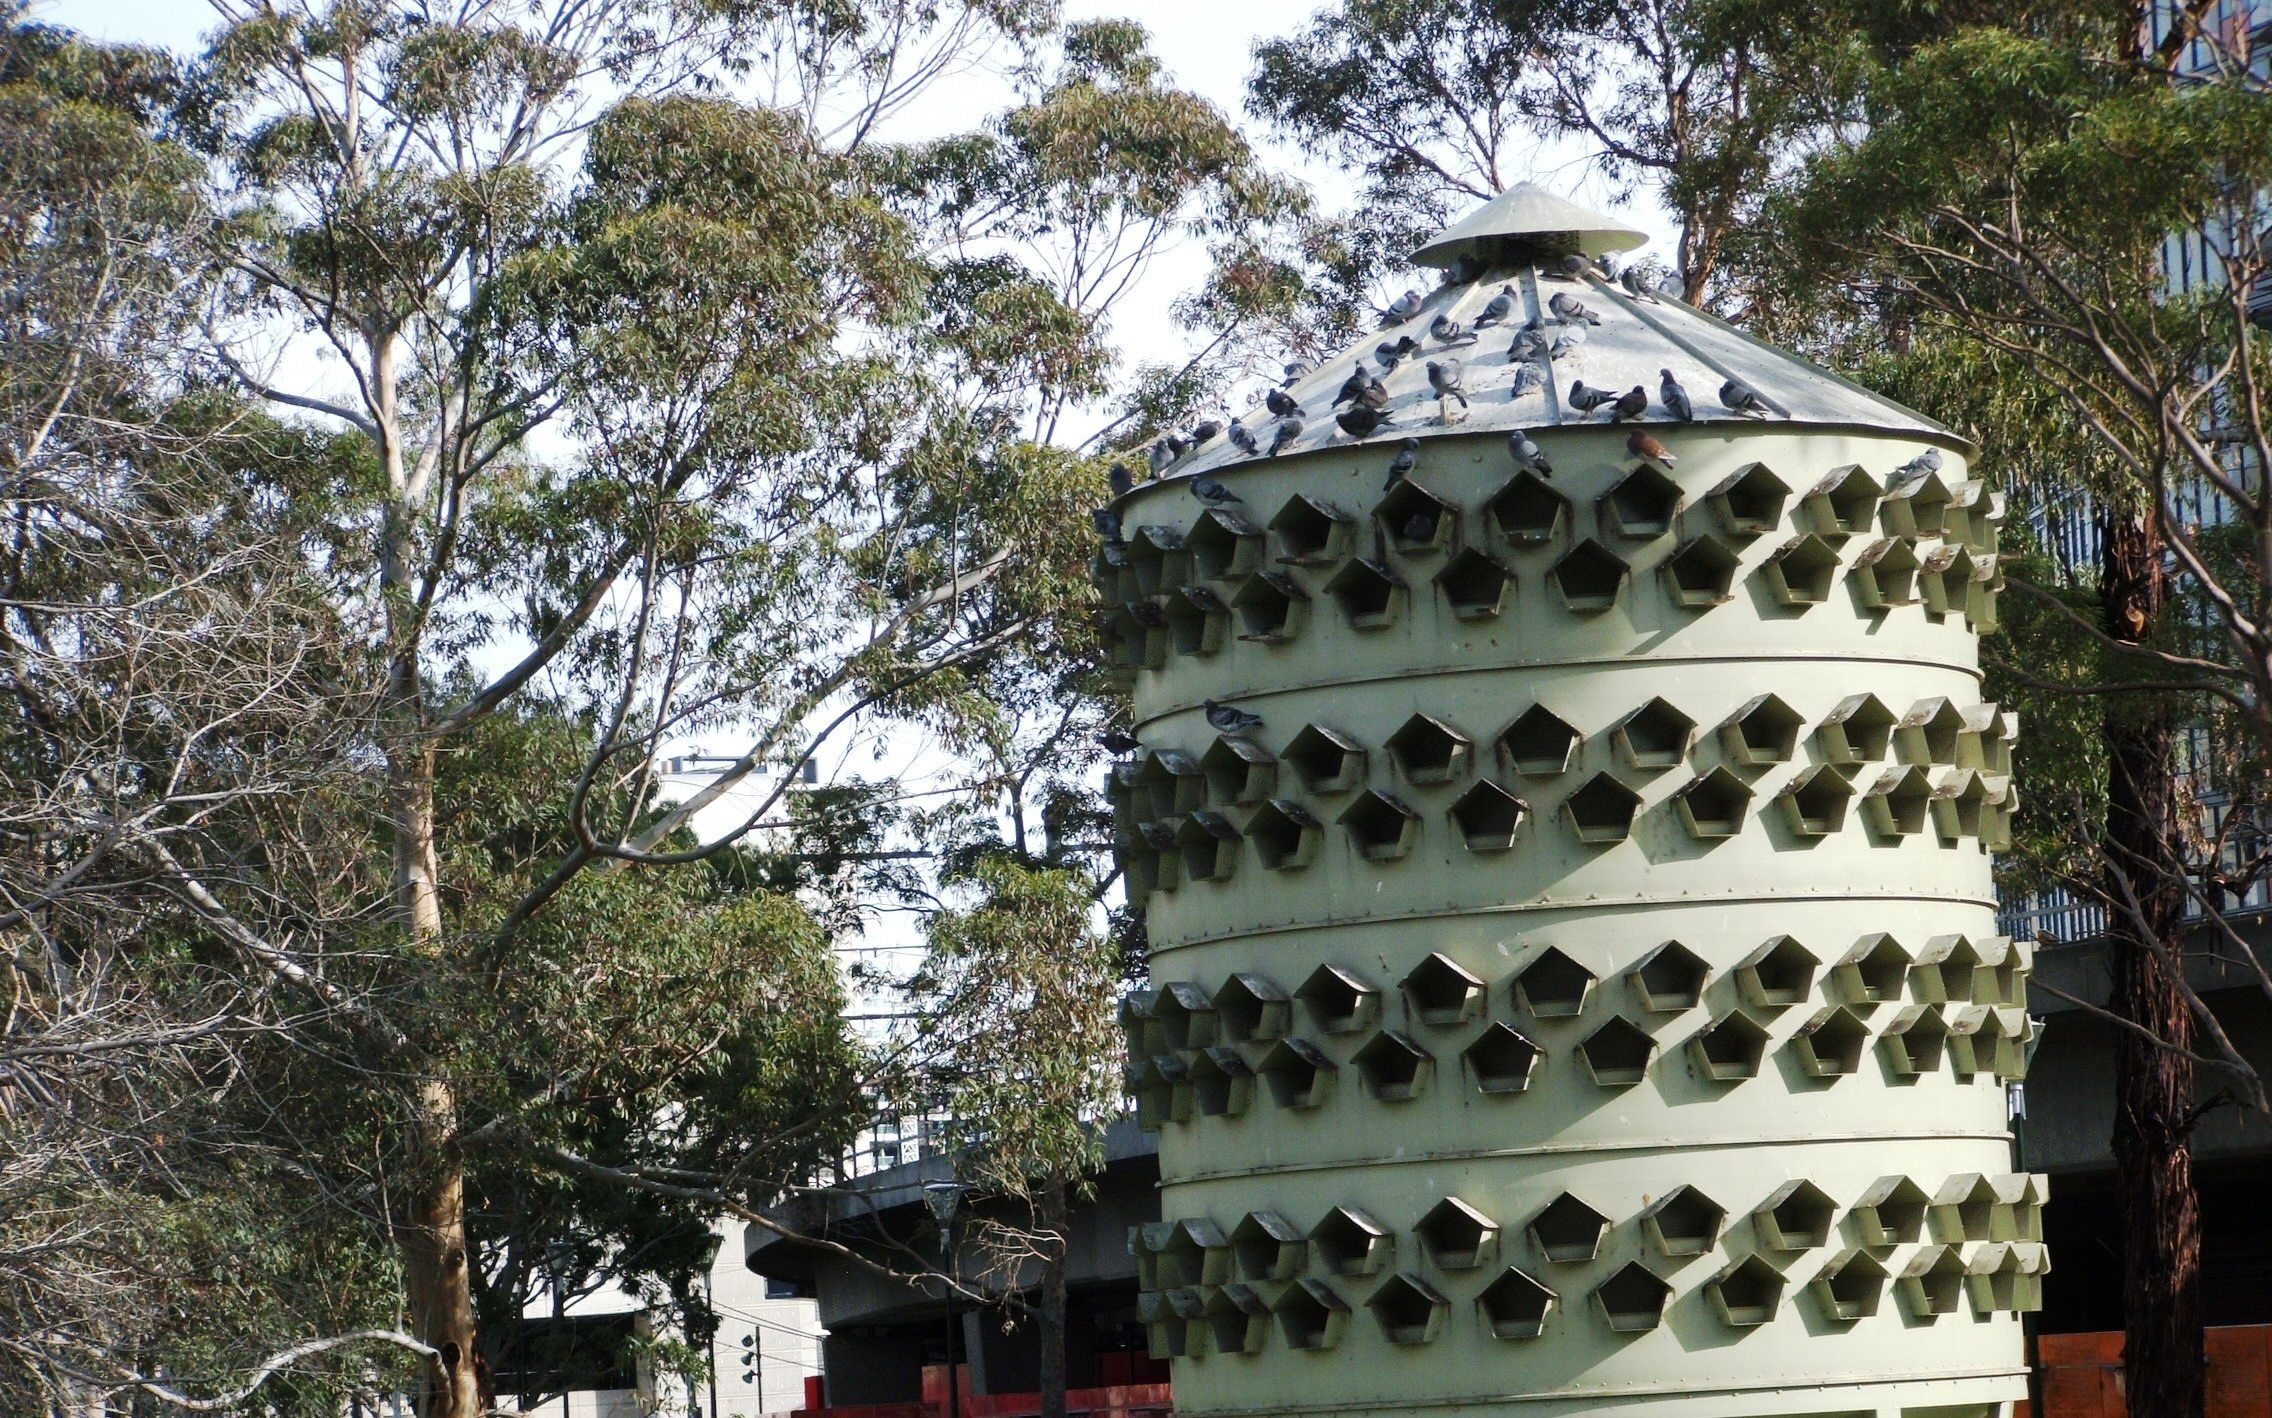 Birdhouse Largest One I Ve Seen Melbourne Aust Bird Houses Leaning Tower Of Pisa Leaning Tower